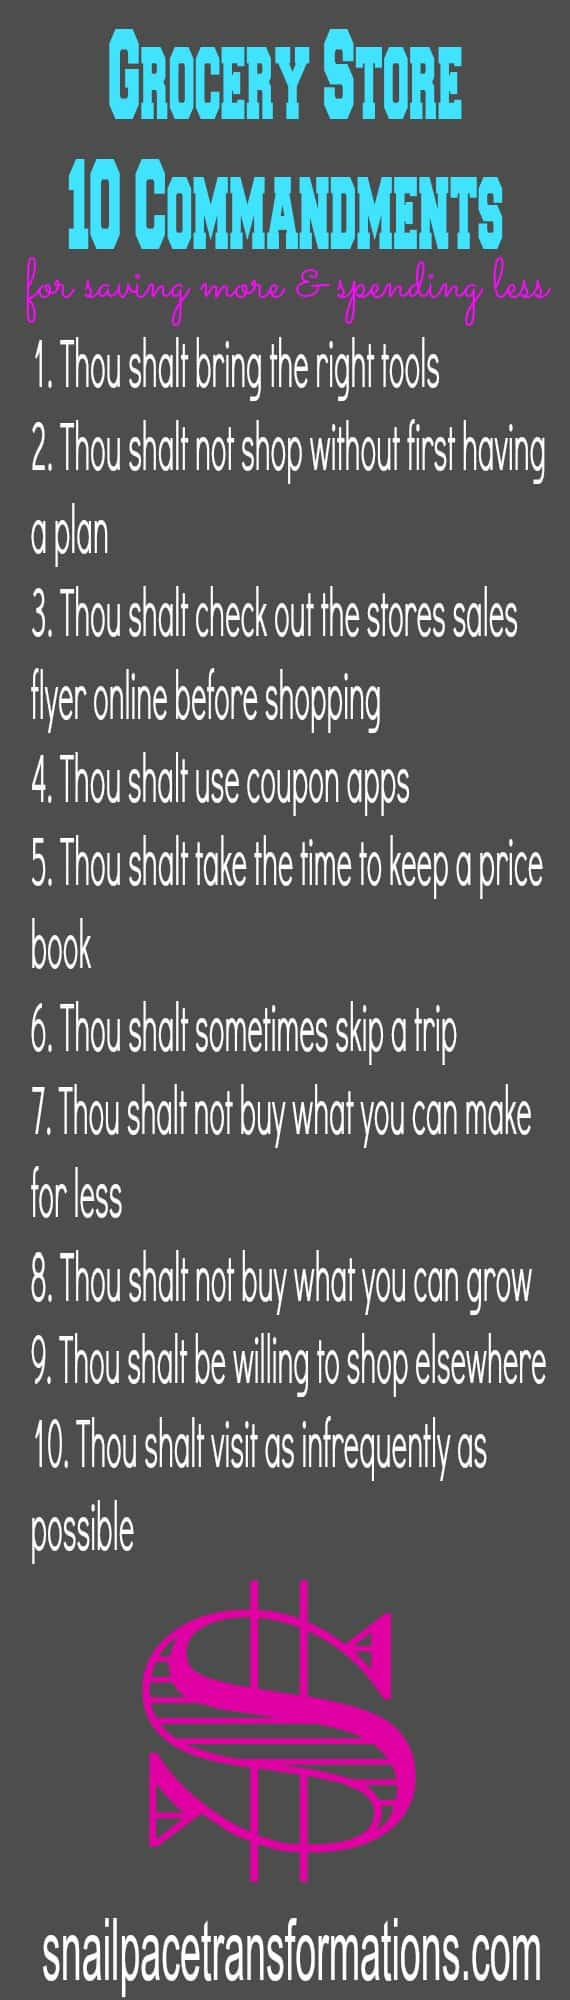 Grocery Store 10 Commandments For Saving More & Spending Less